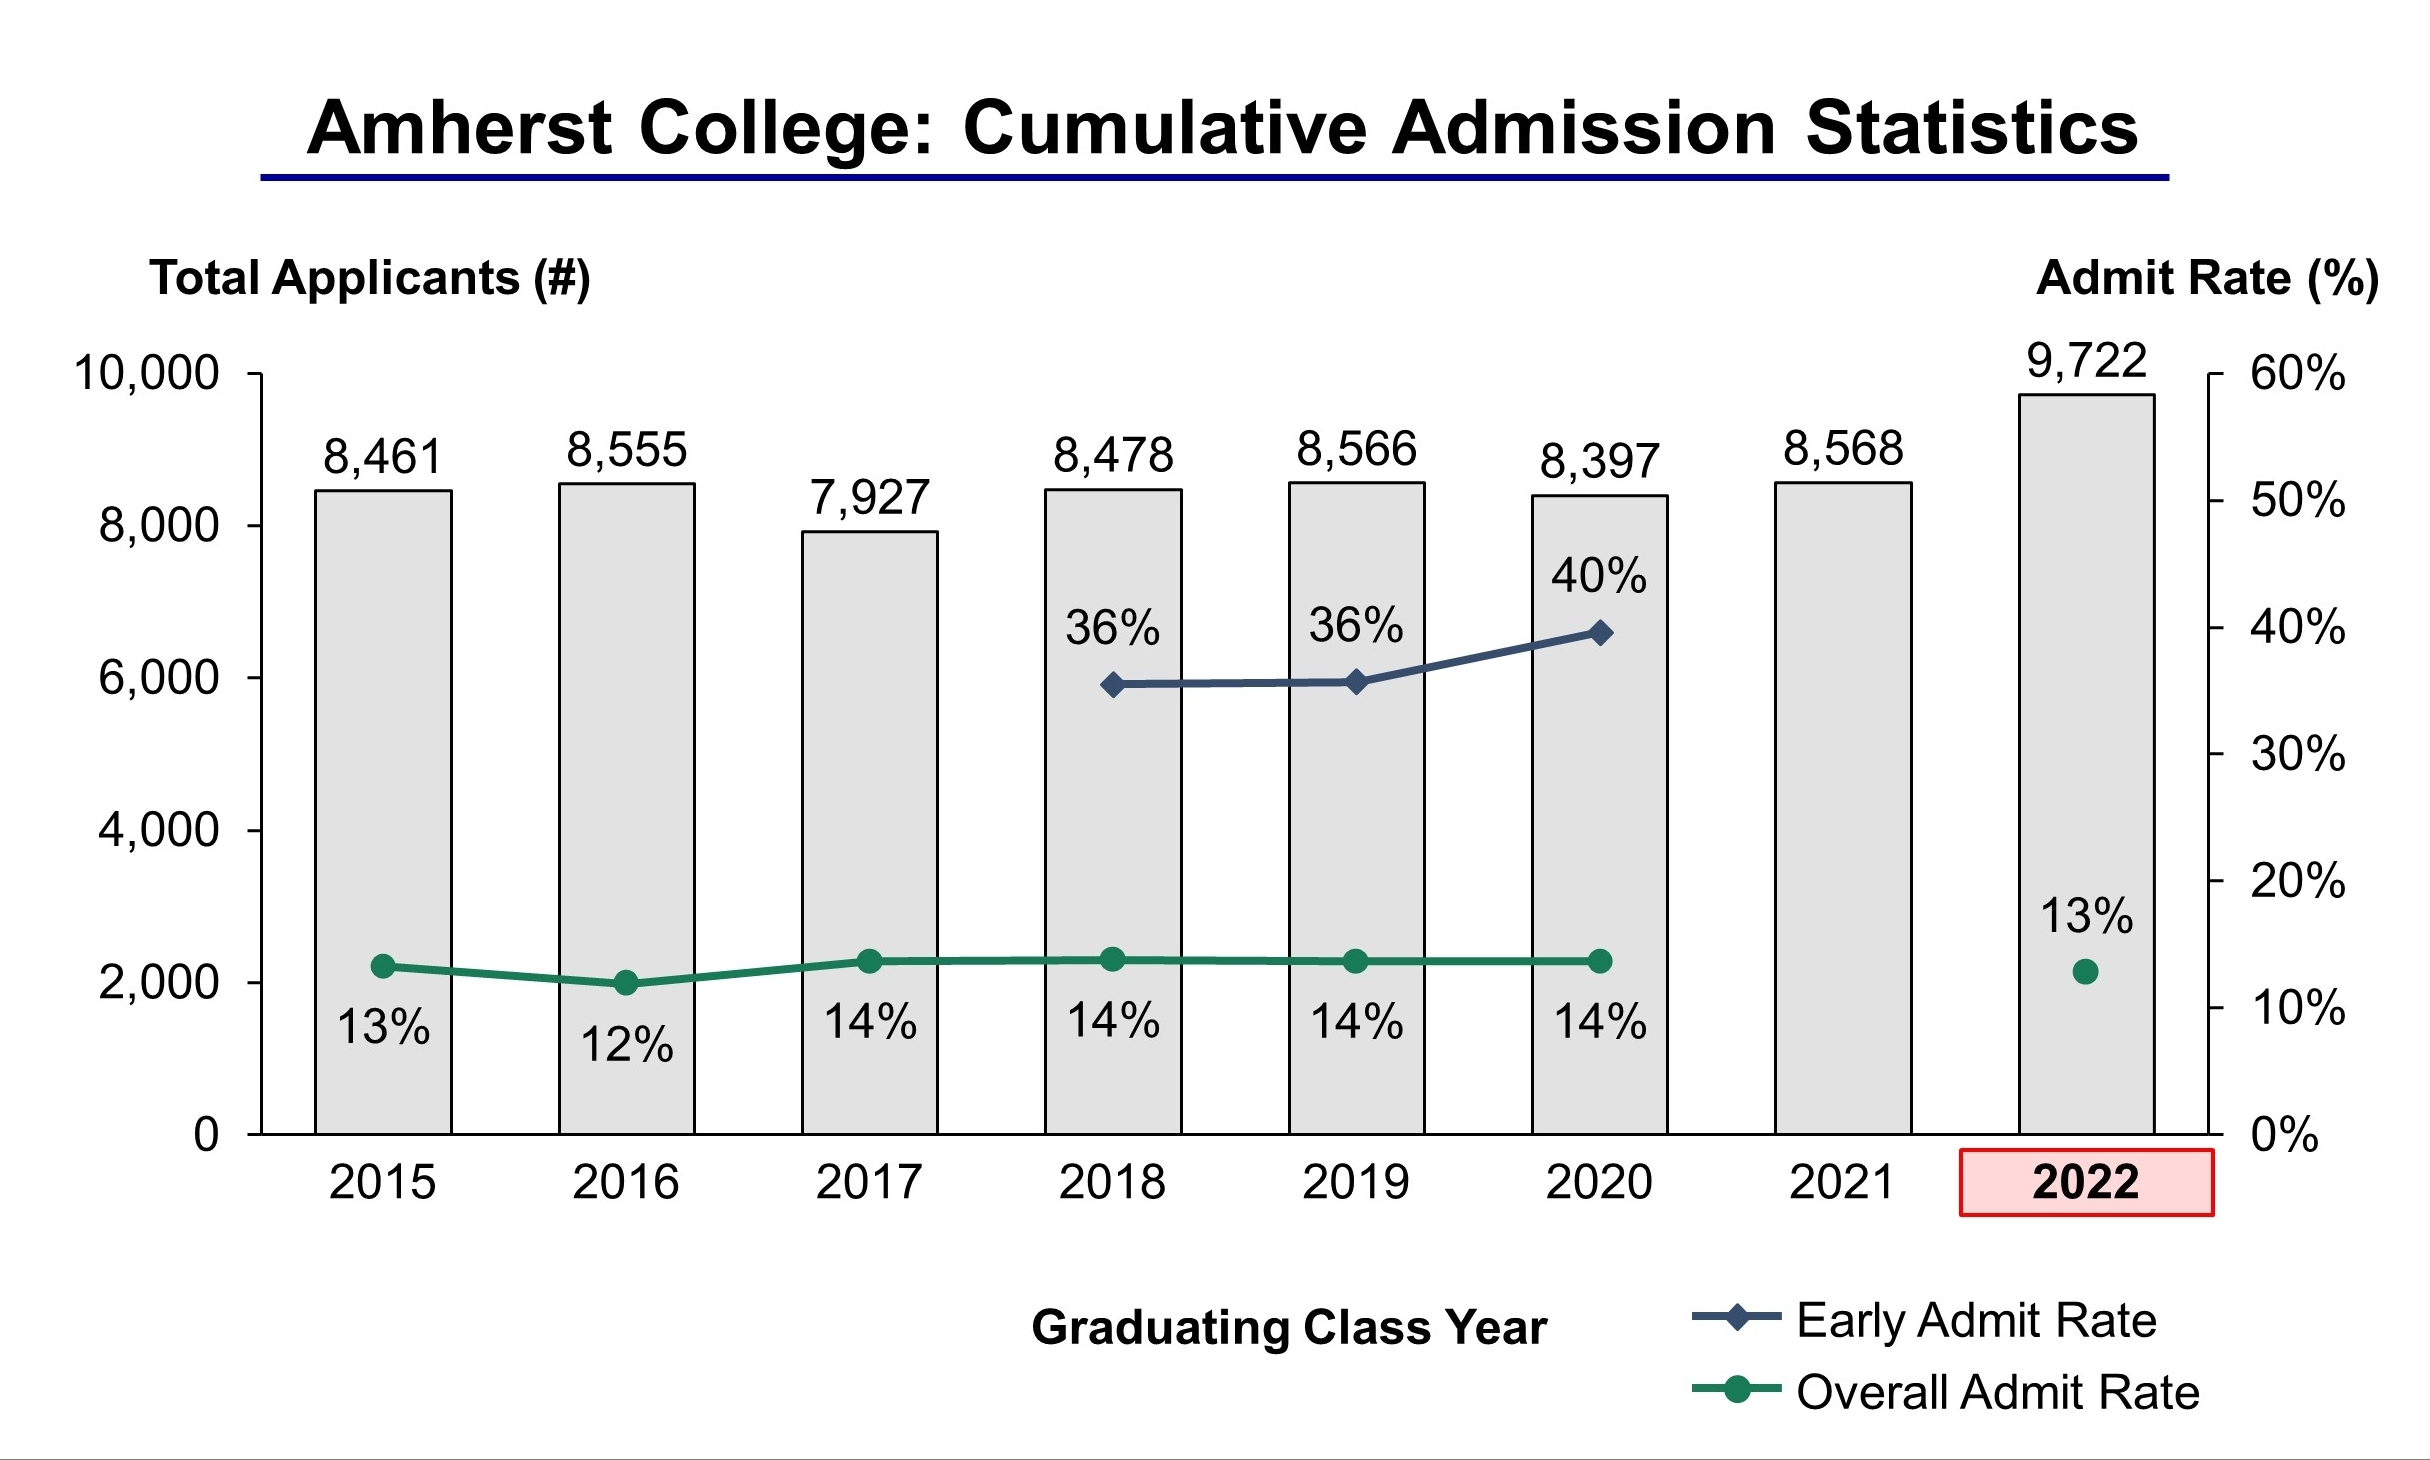 Amherst College Acceptance Rate and Admission Statistics